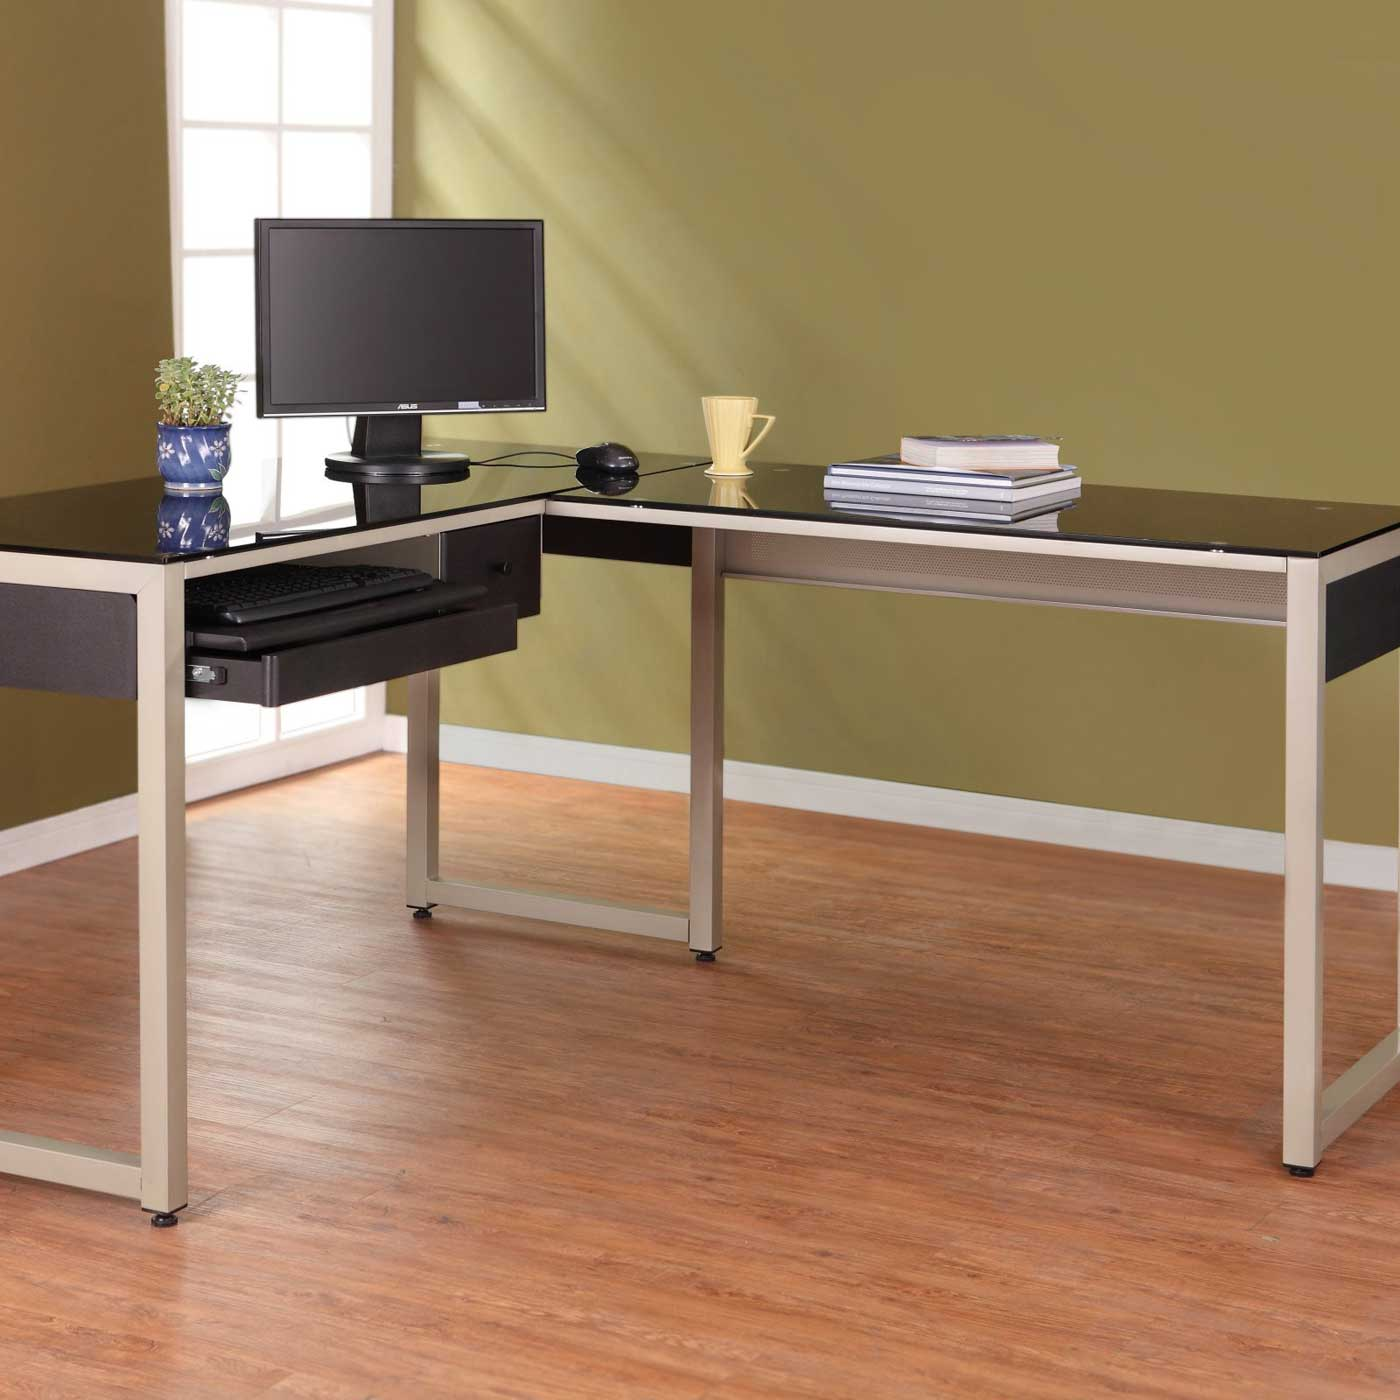 Black glass computer desk for home office - Metal office desk ...